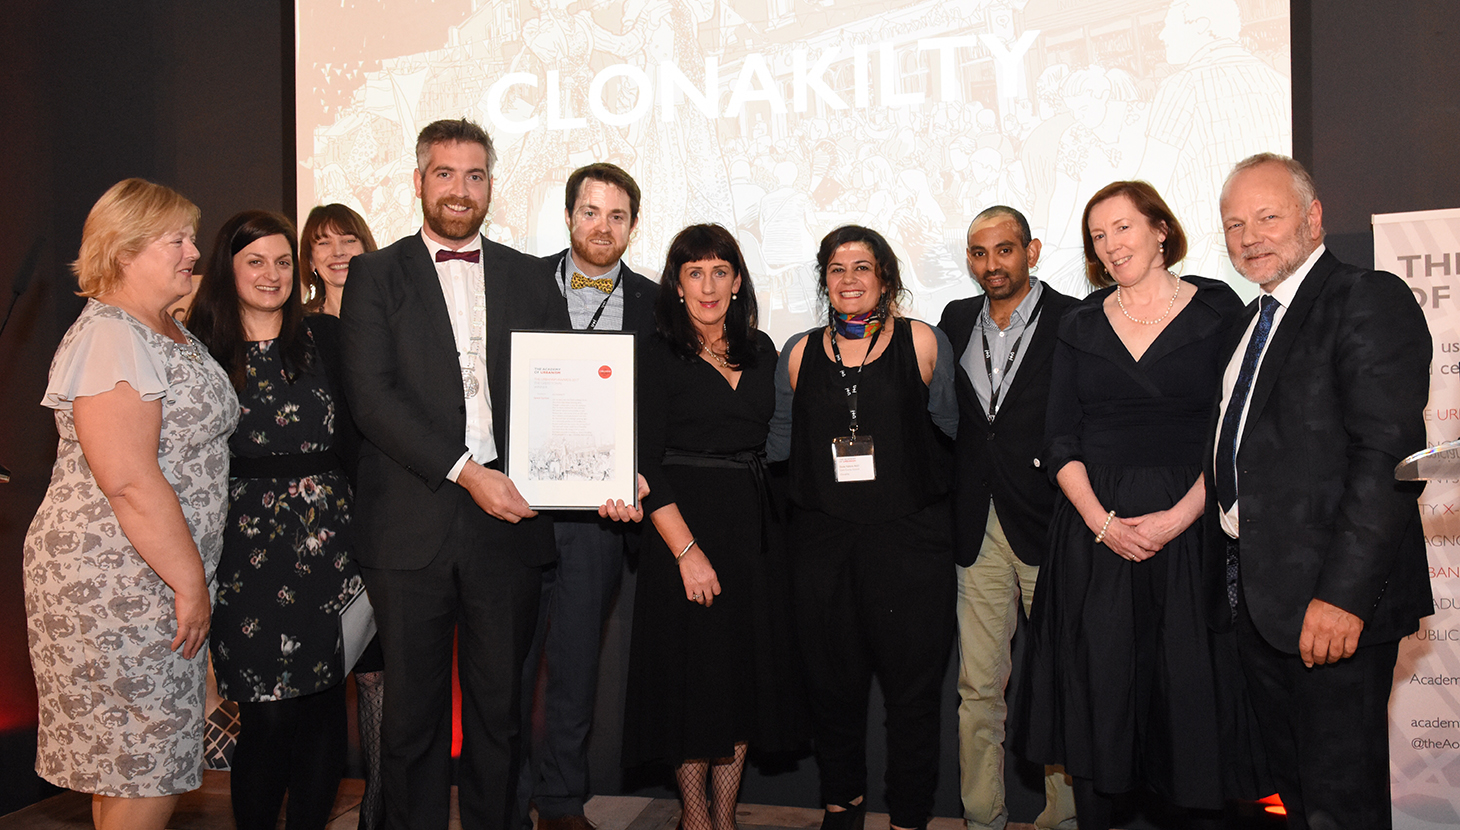 Clonakilty representatives recieve The Great Town Award